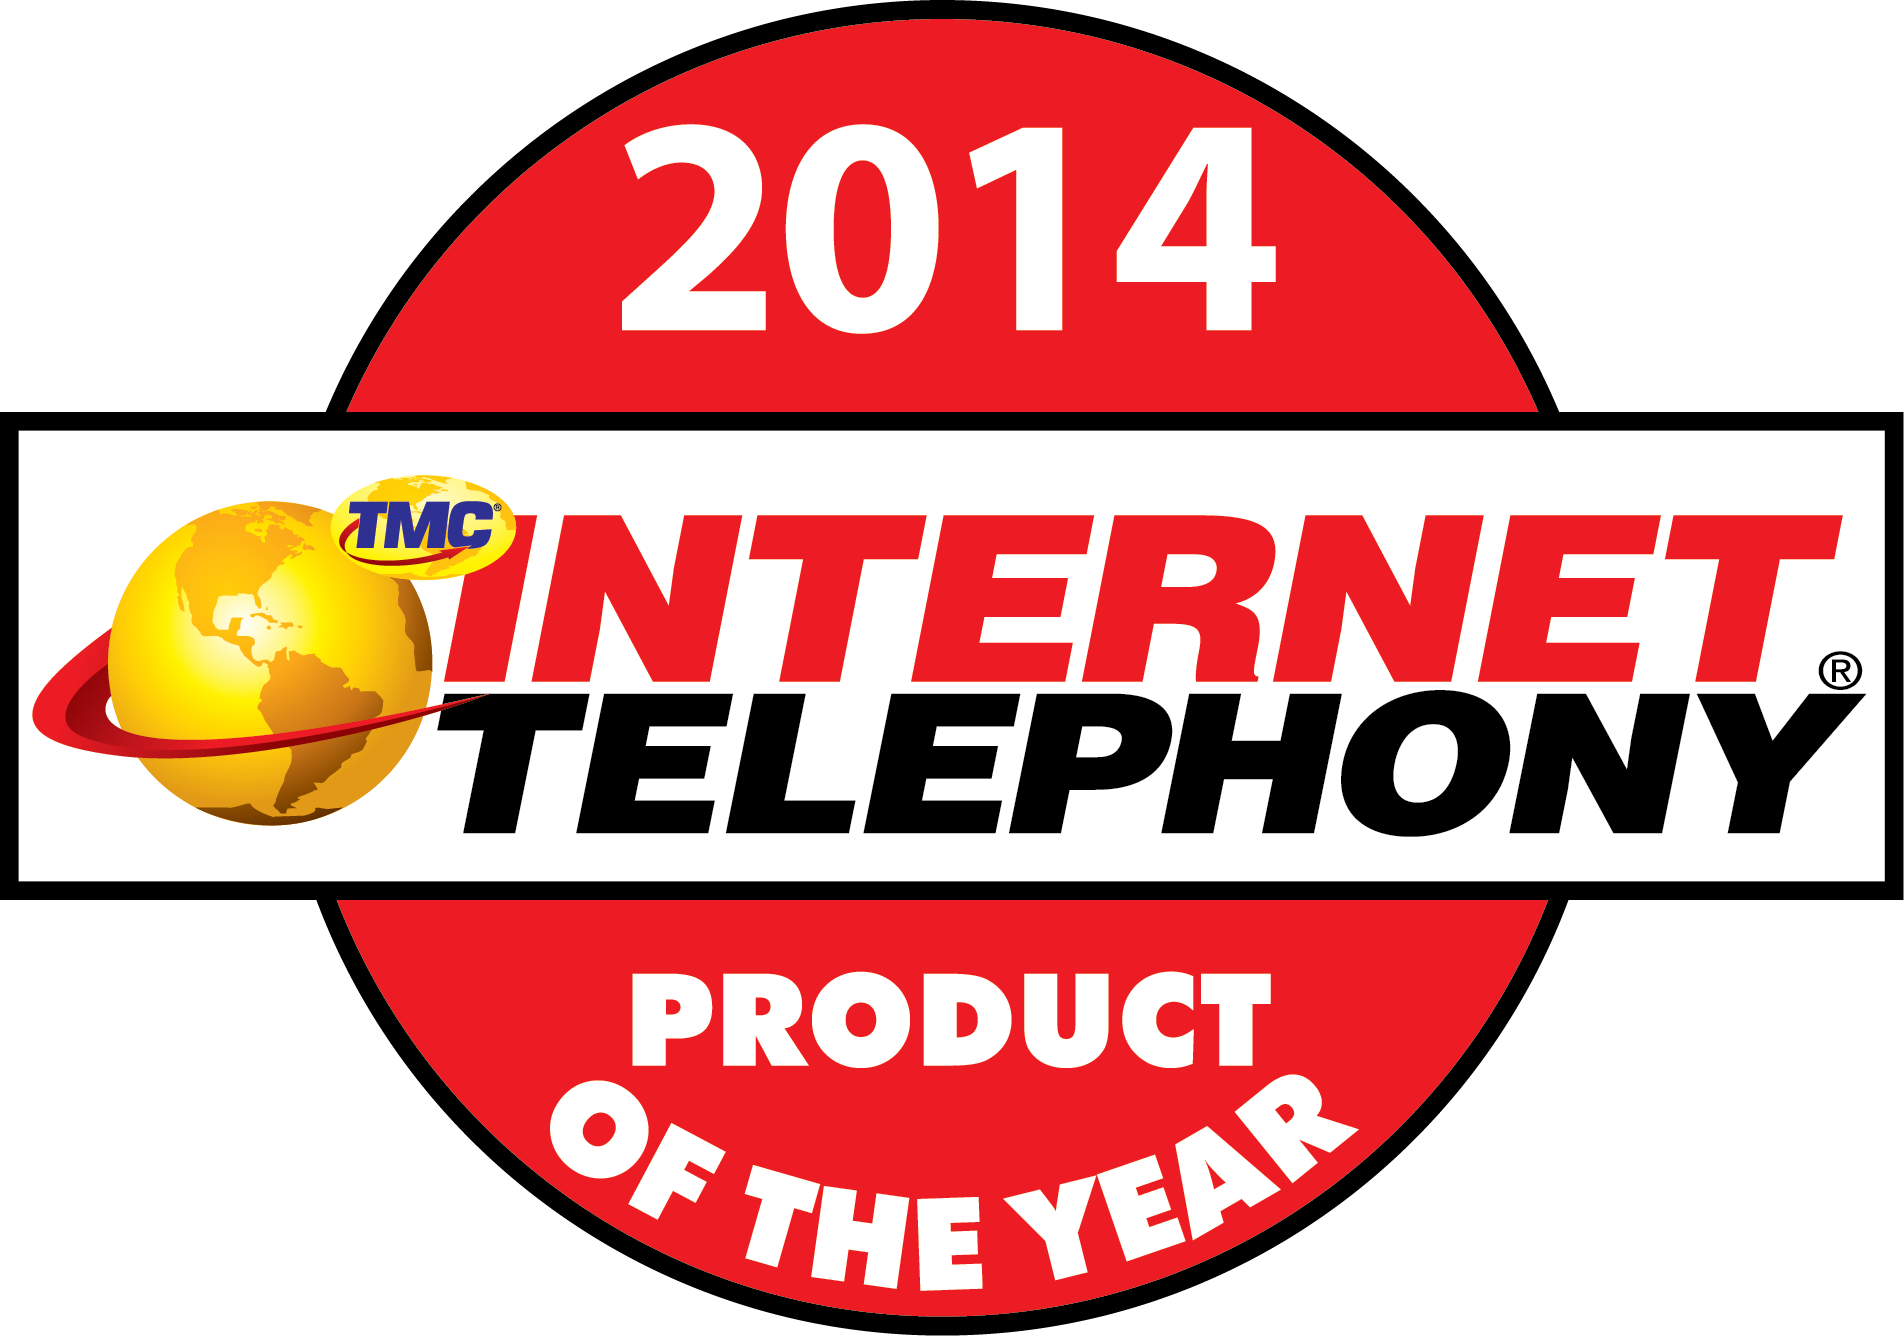 TEM Suite 2014 Product of the Year Award